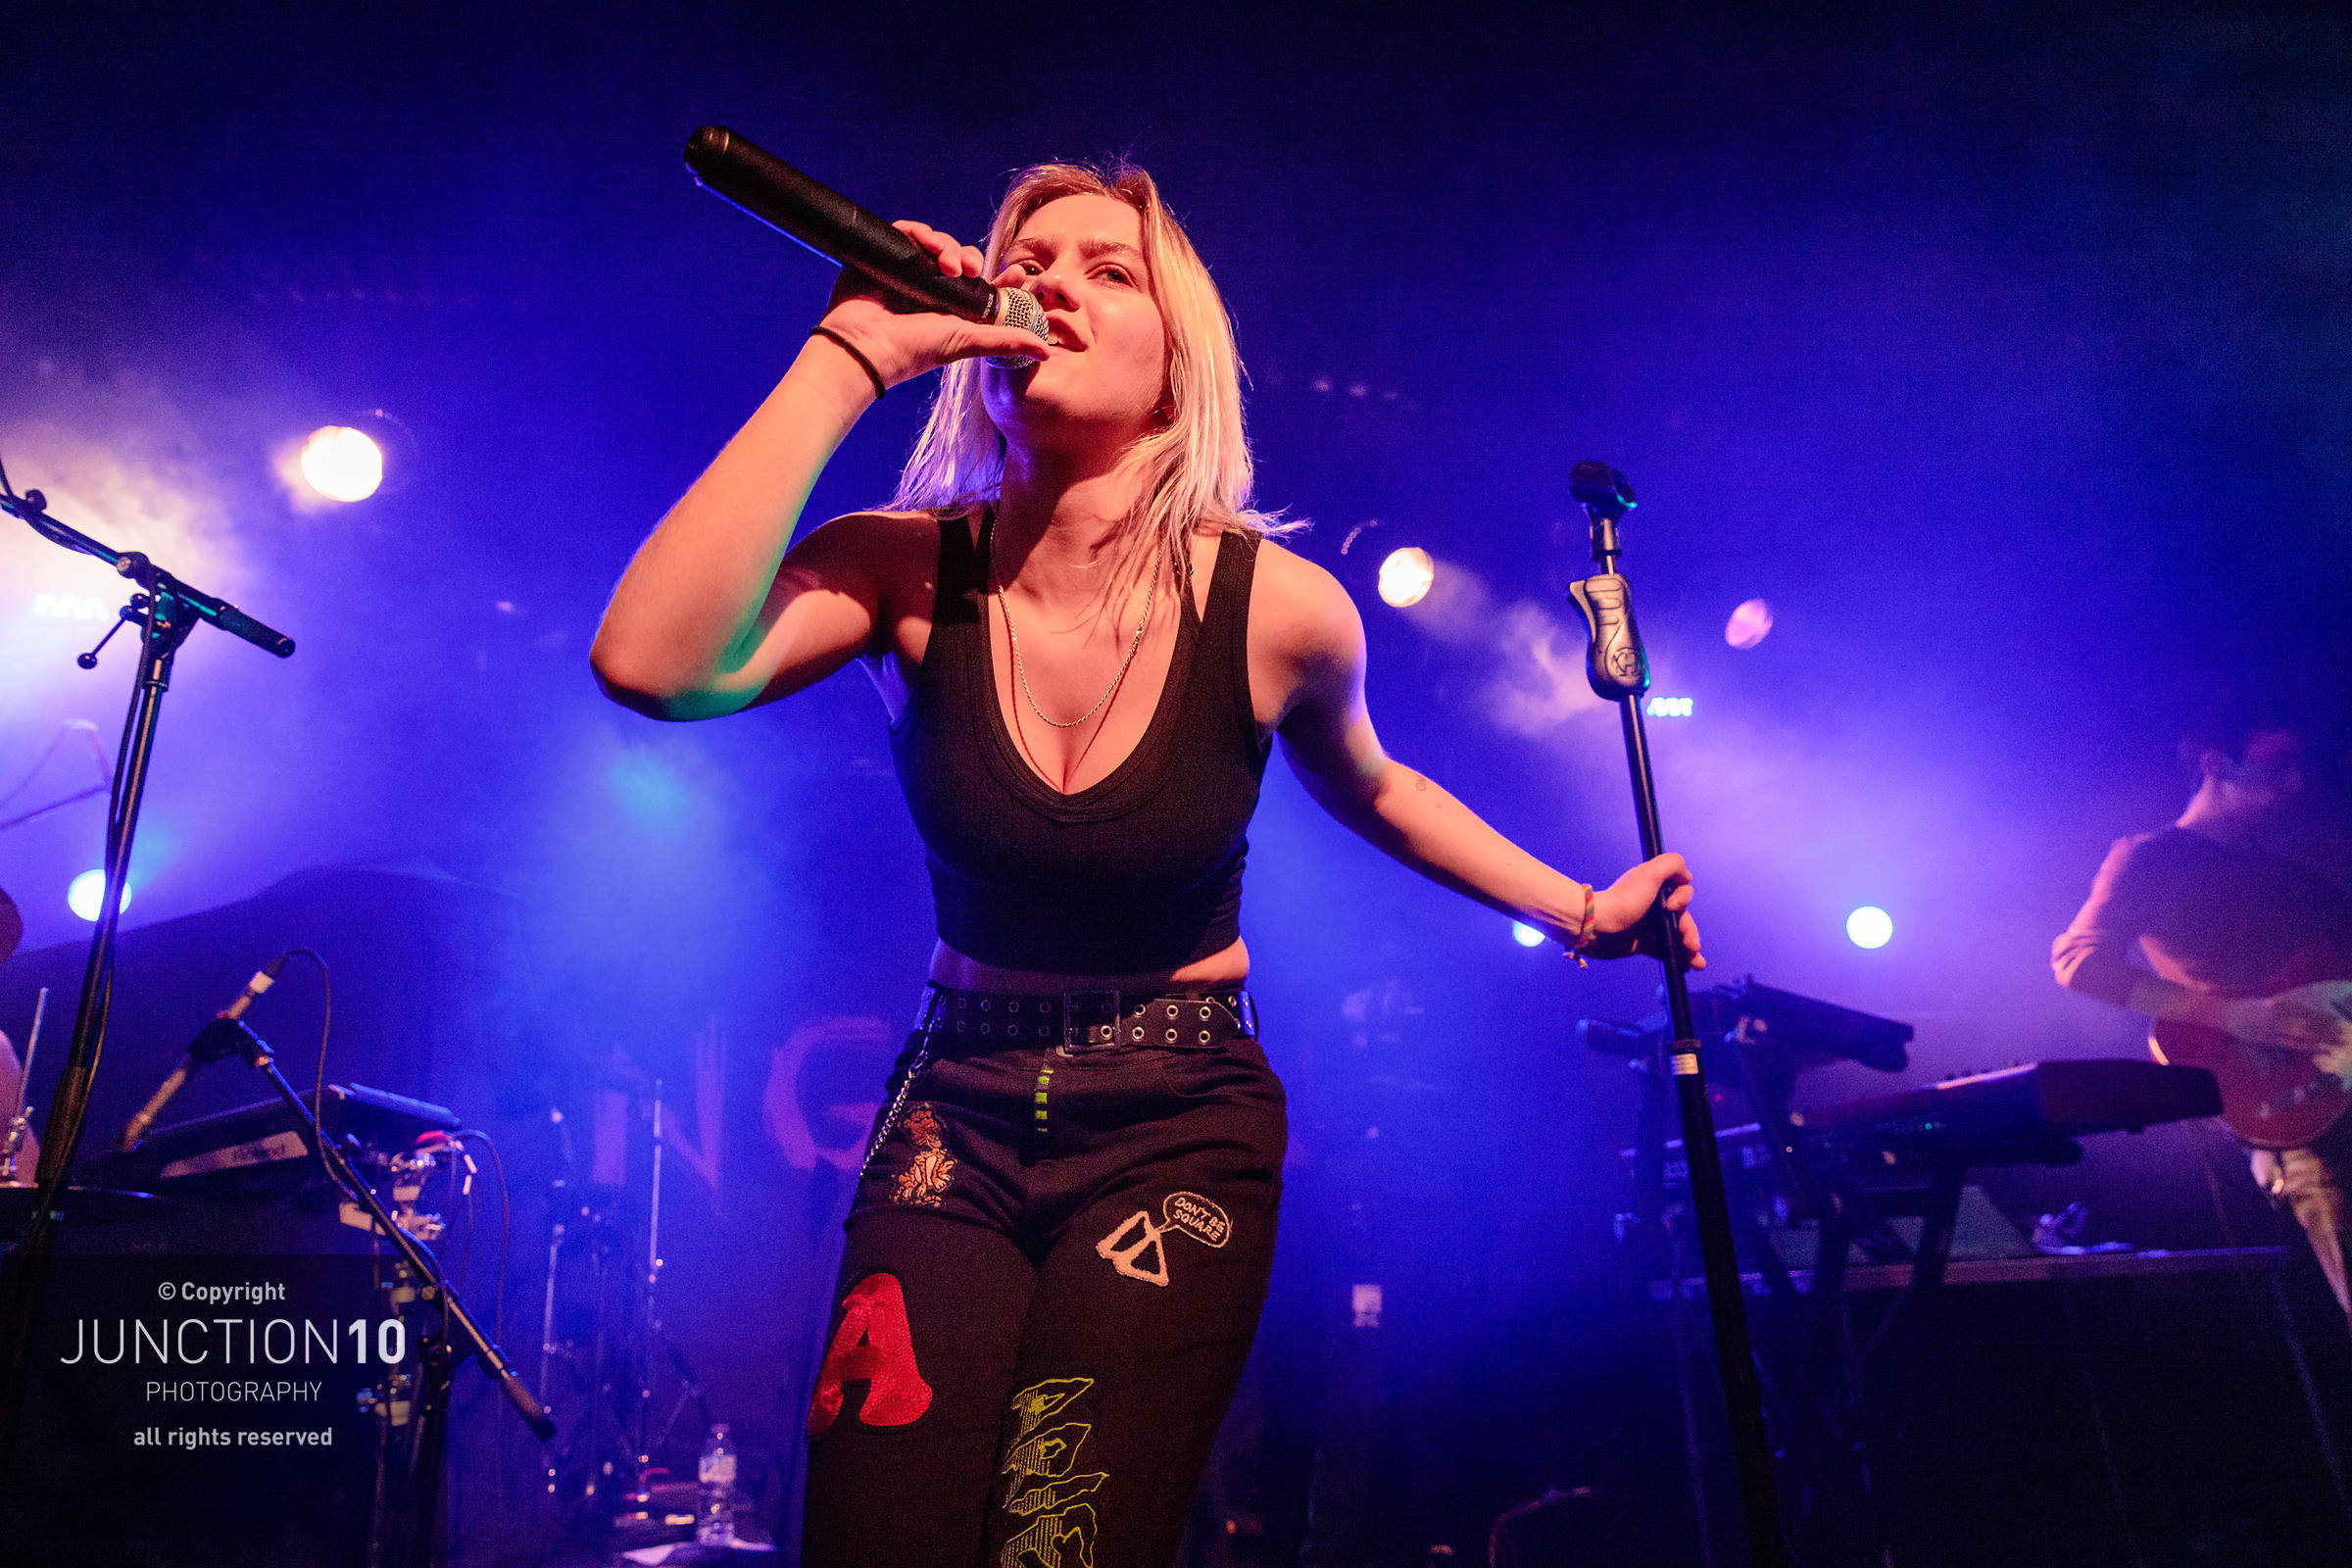 Carlie Hanson at the O2 Institute 2, Birmingham, United Kingdom - 12 Mar 2019